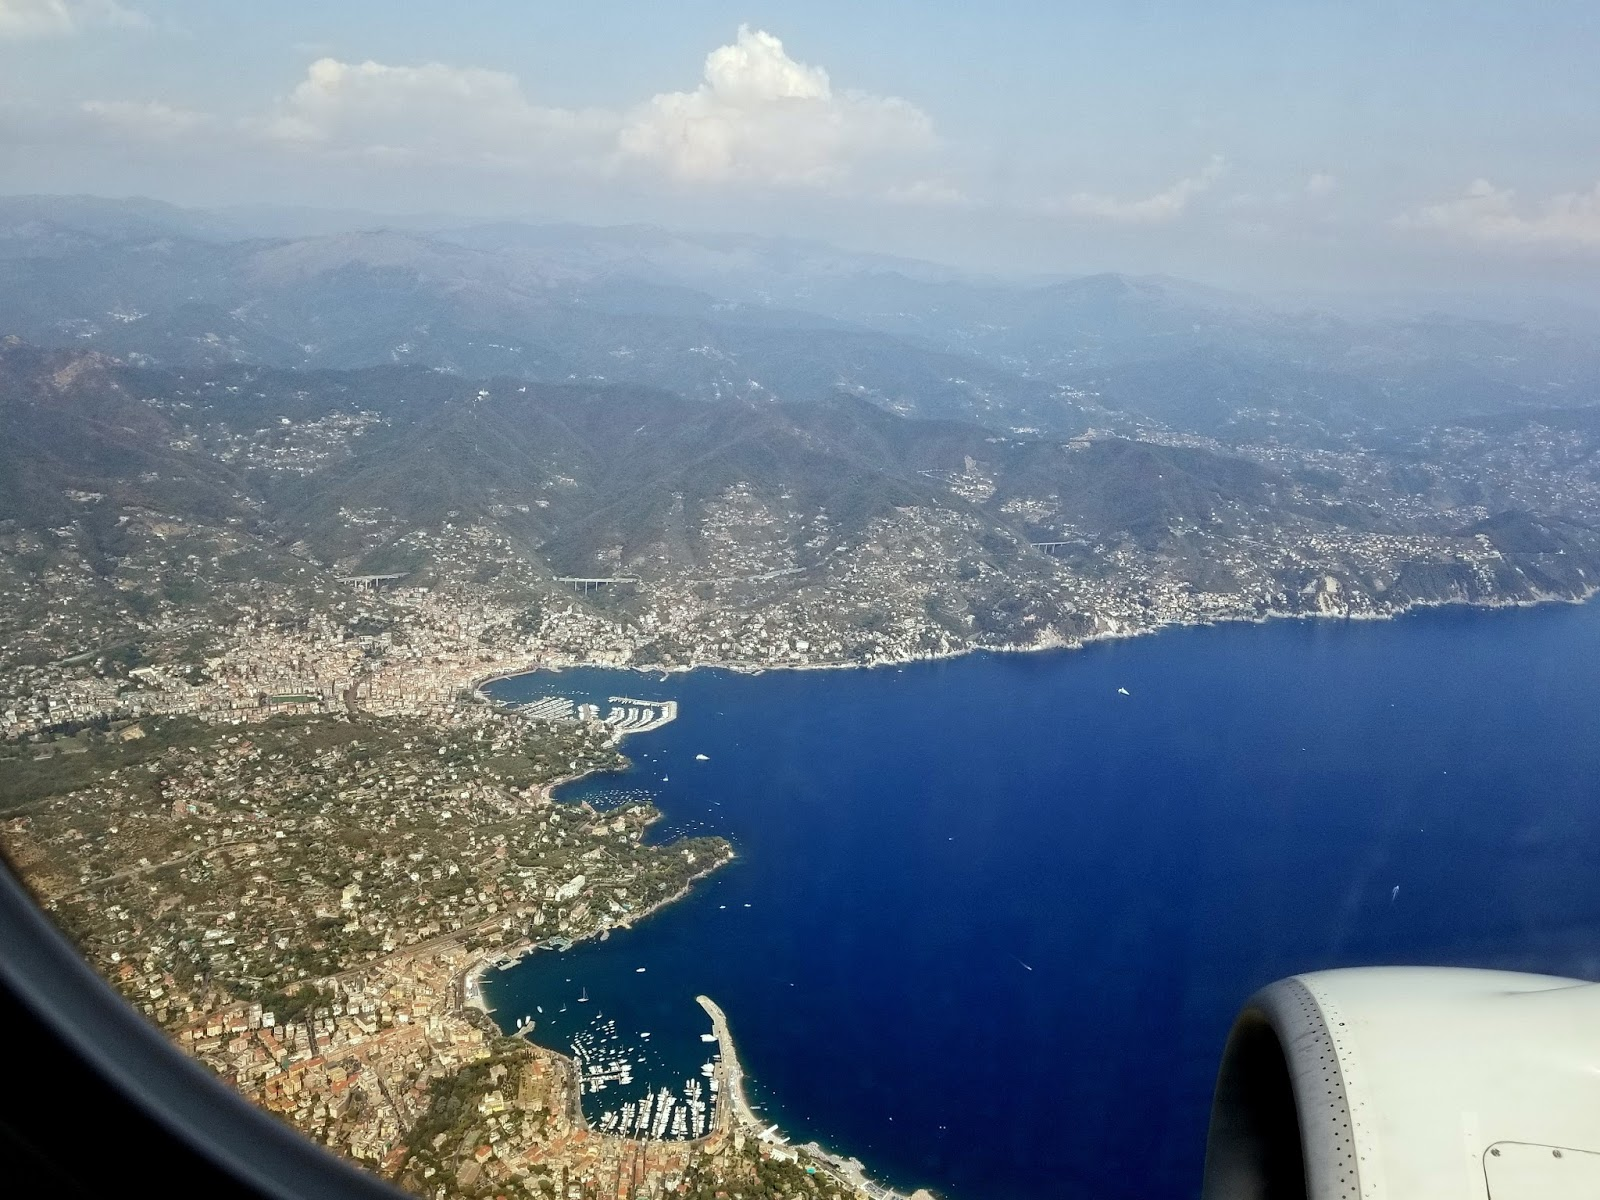 Travel to Liguria and Genoa in Italy